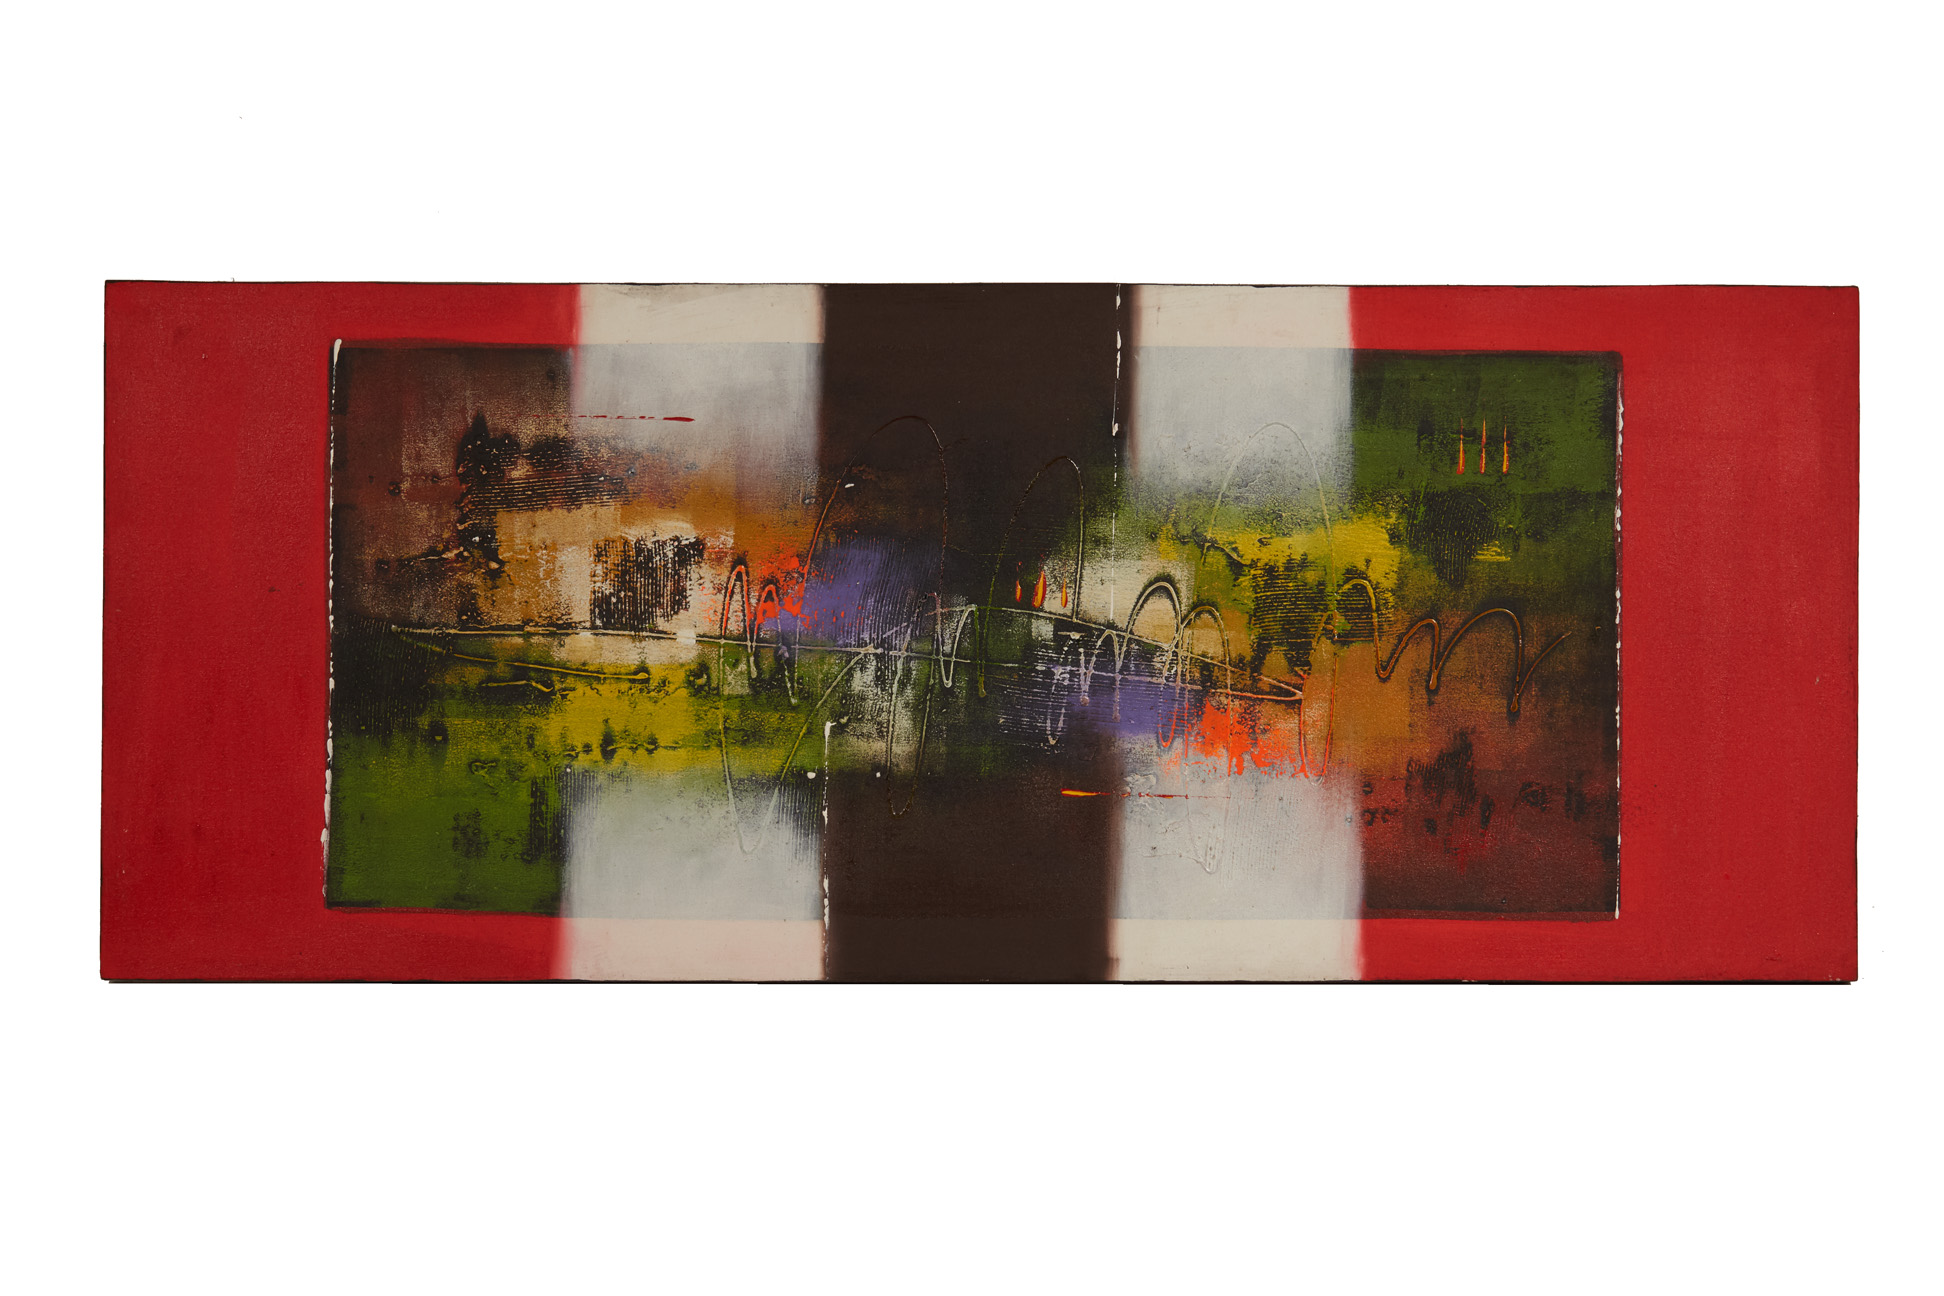 UNATTRIBUTED (LATE 20TH/21ST CENTURY) - ABSTRACT - Image 2 of 6